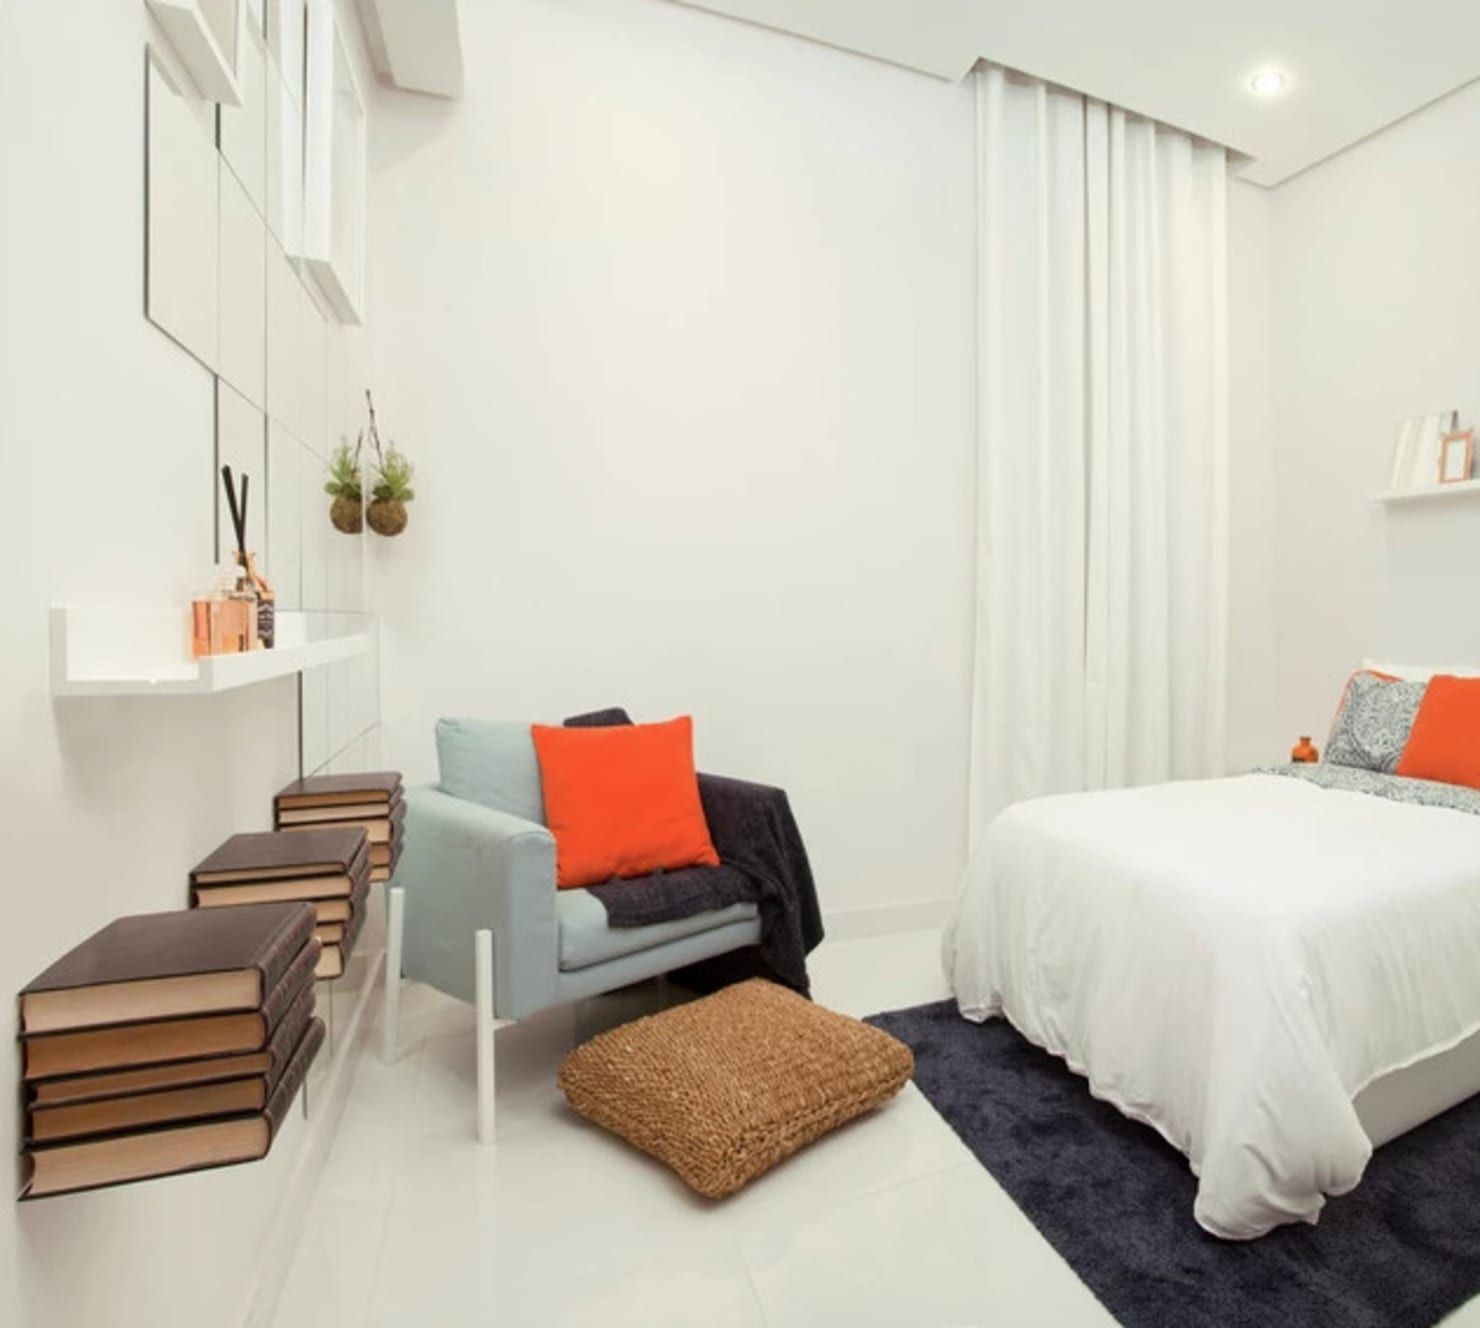 The Classy White Bedroom By Top London Designers: Flipboard: The Classy White Bedroom By Top London Designers